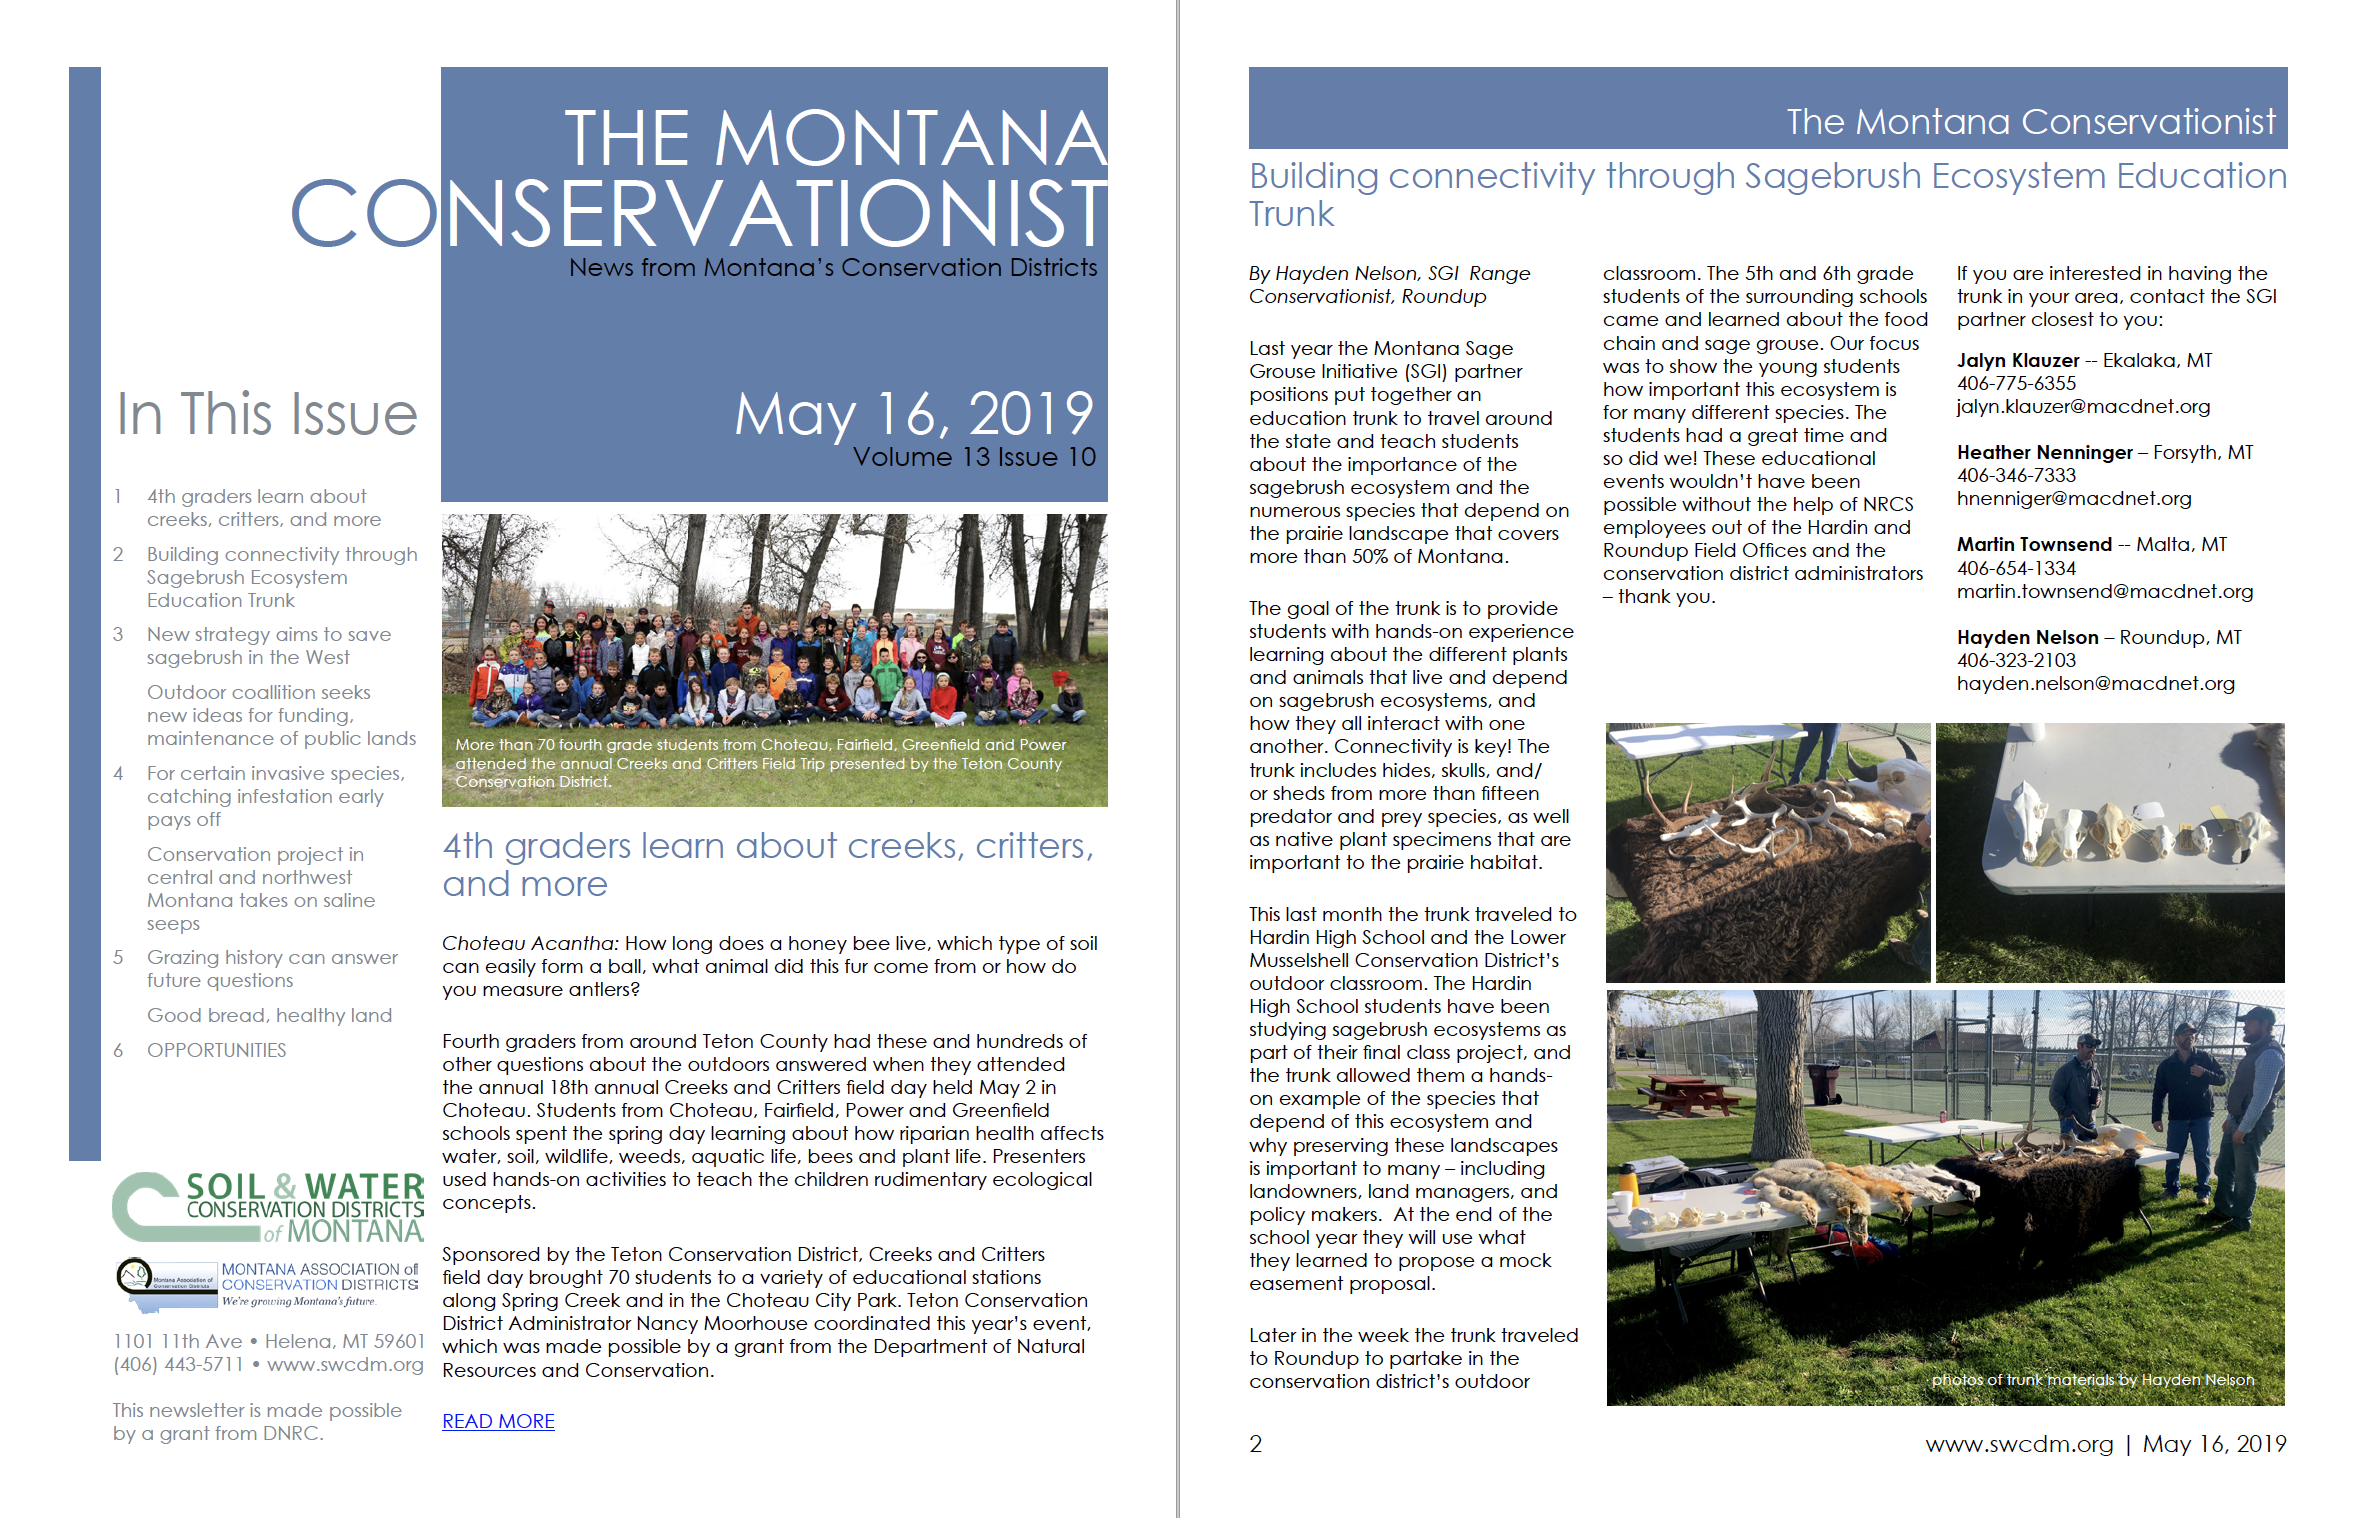 The Montana Conservationist, May 16